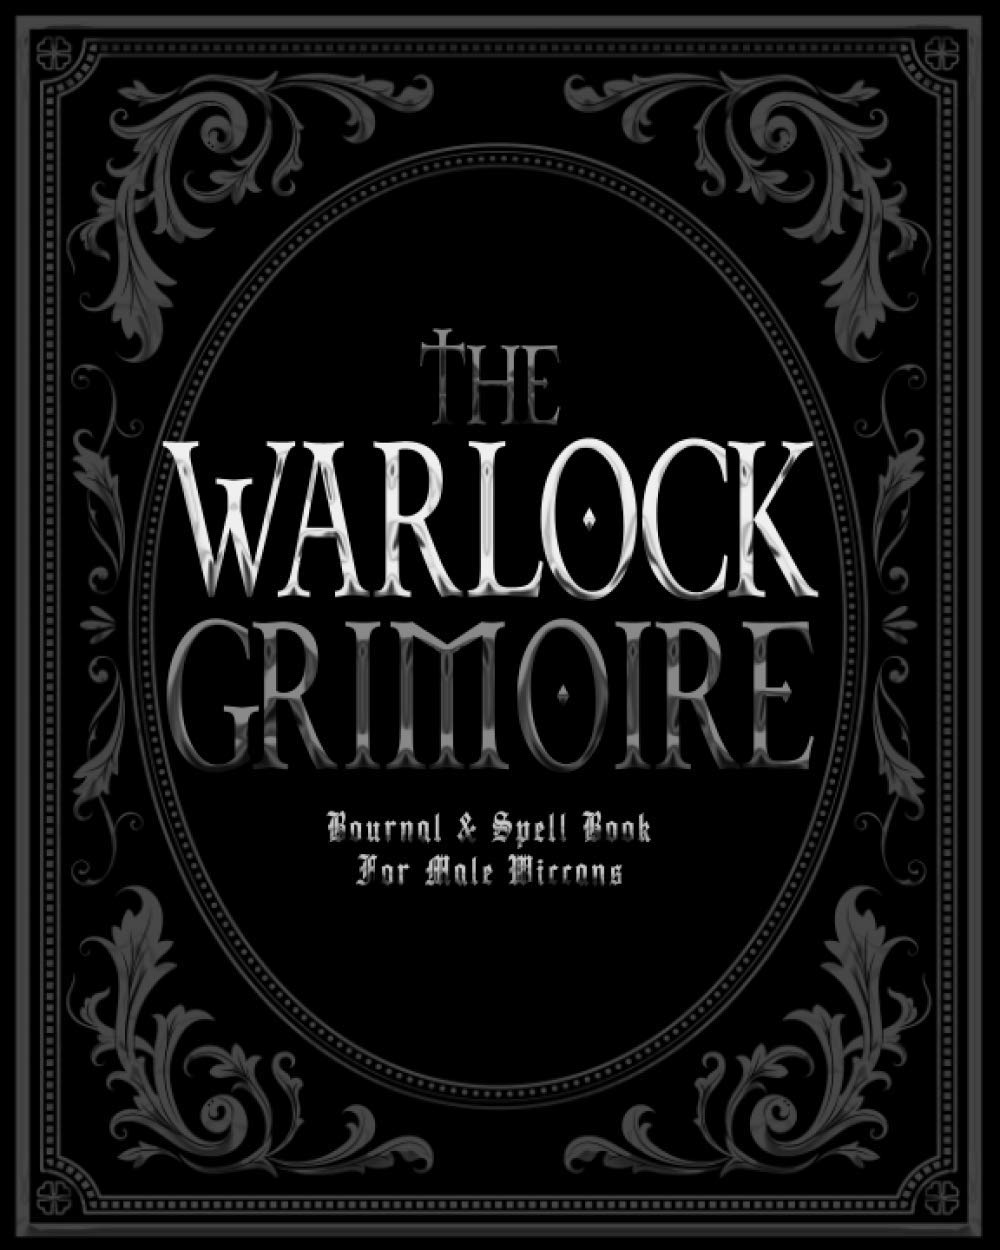 The Warlock Grimoire The Best Dark Spell Book For Male Wiccans Mages And Witches W Journal Pages Spell Pages And Moon Phase Charts Dark Arts Press 9798696574479 Amazon Com Books